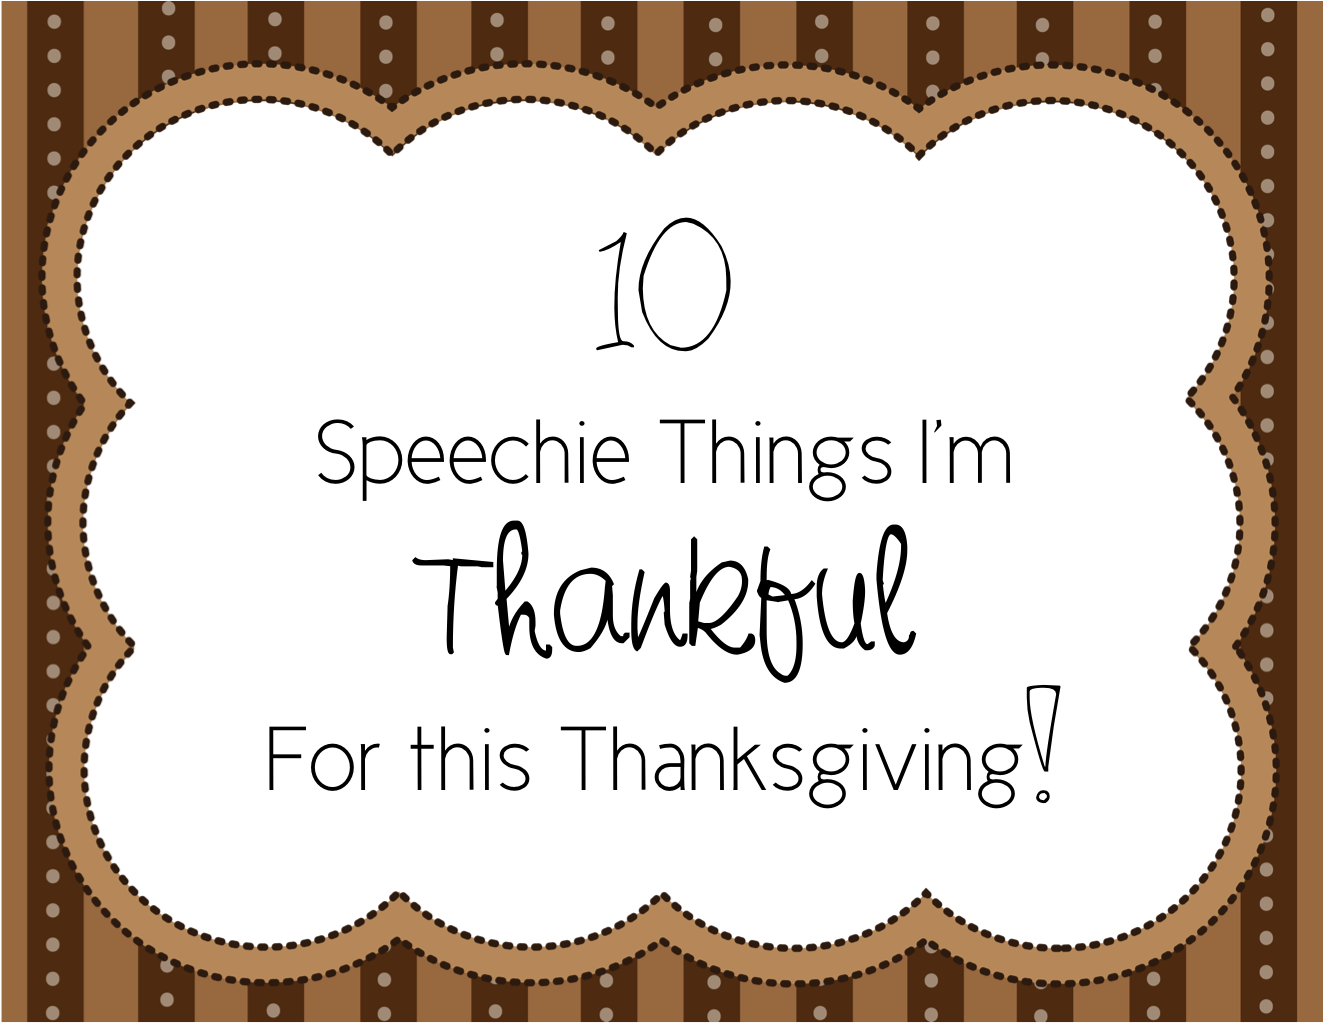 Busy Bee Speech 10 Speechie Things I M Thankful For